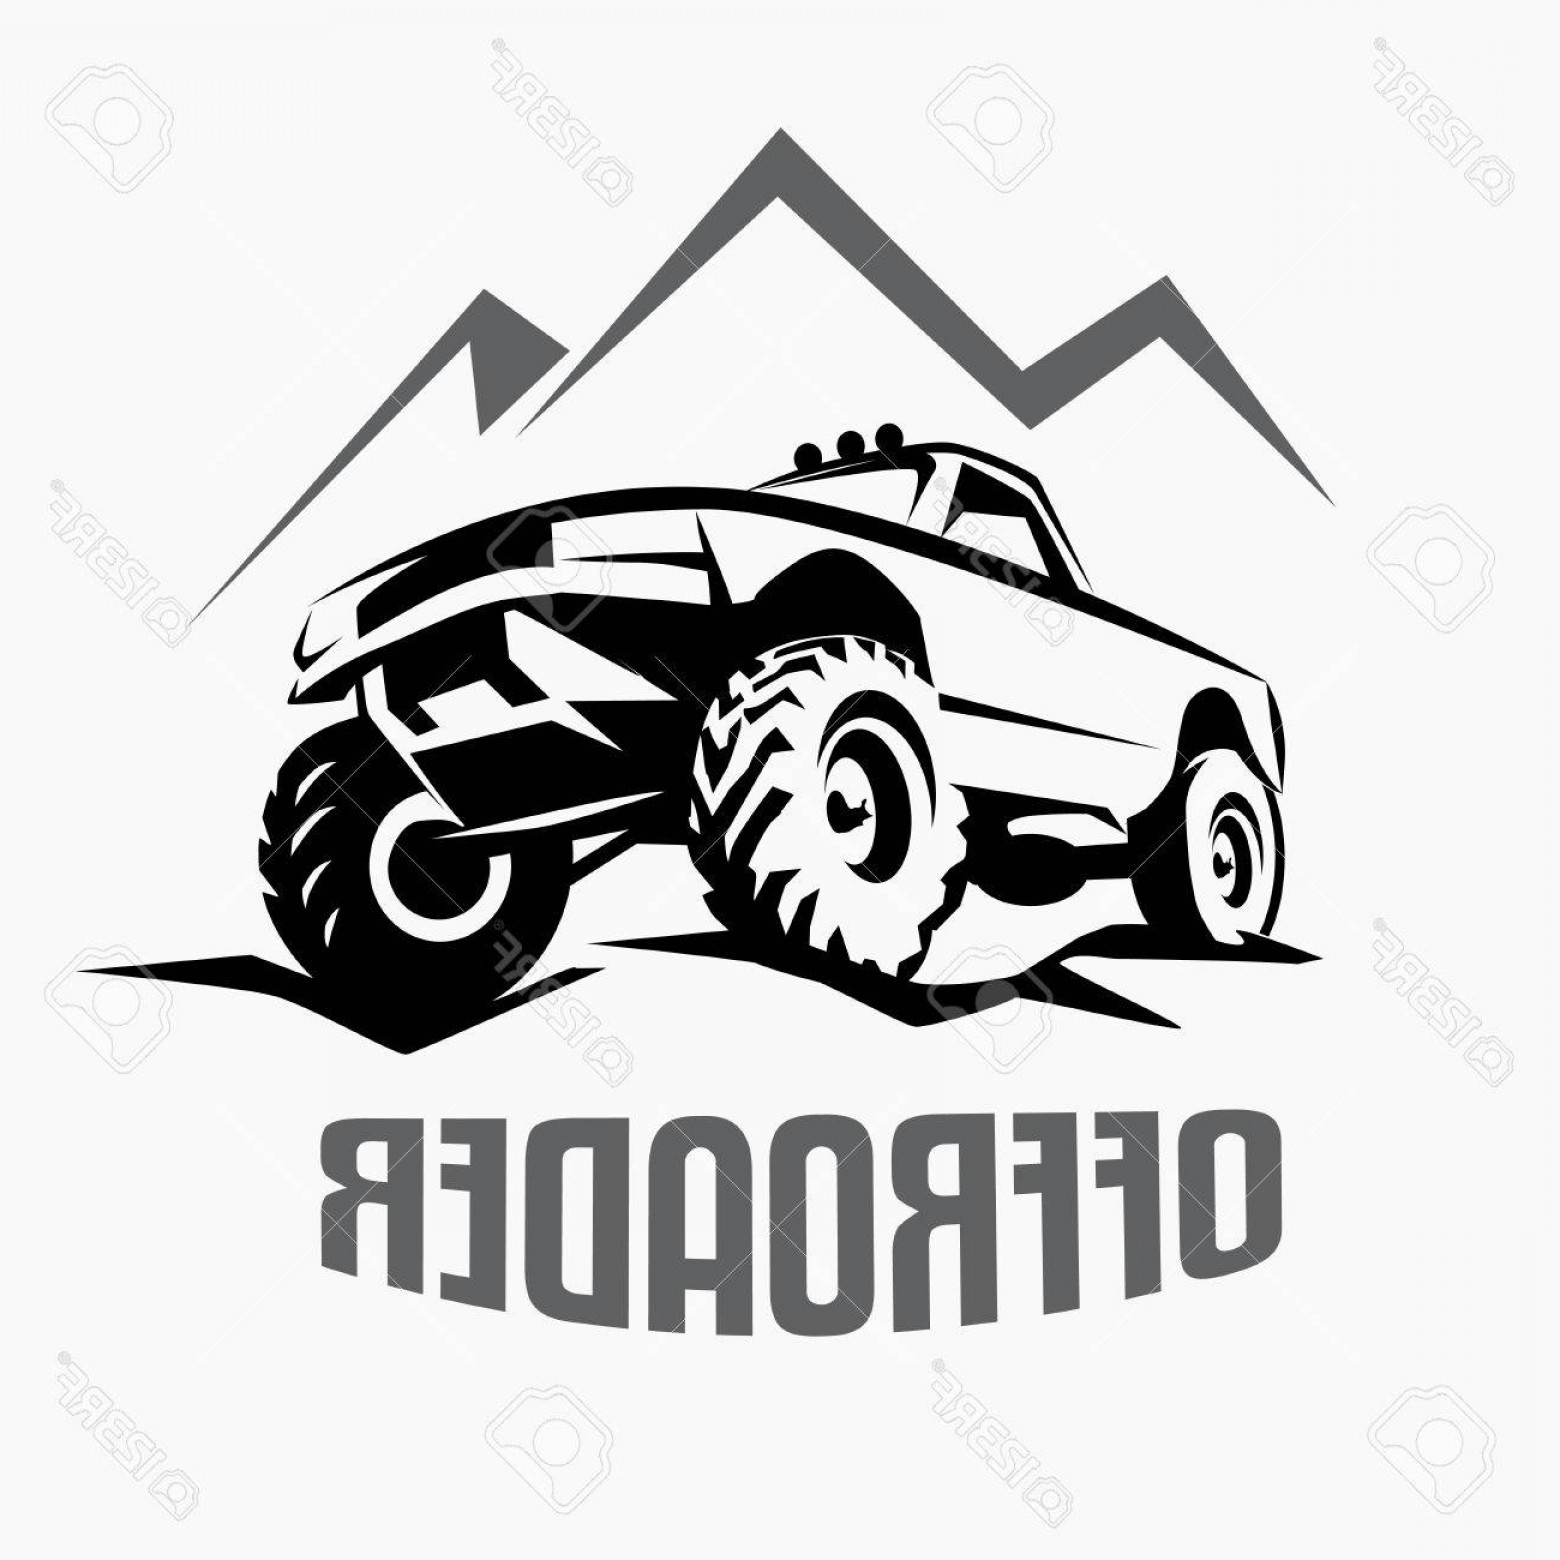 1560x1560 Photostock Vector Offroad Suv Car Monochrome Template For Labels